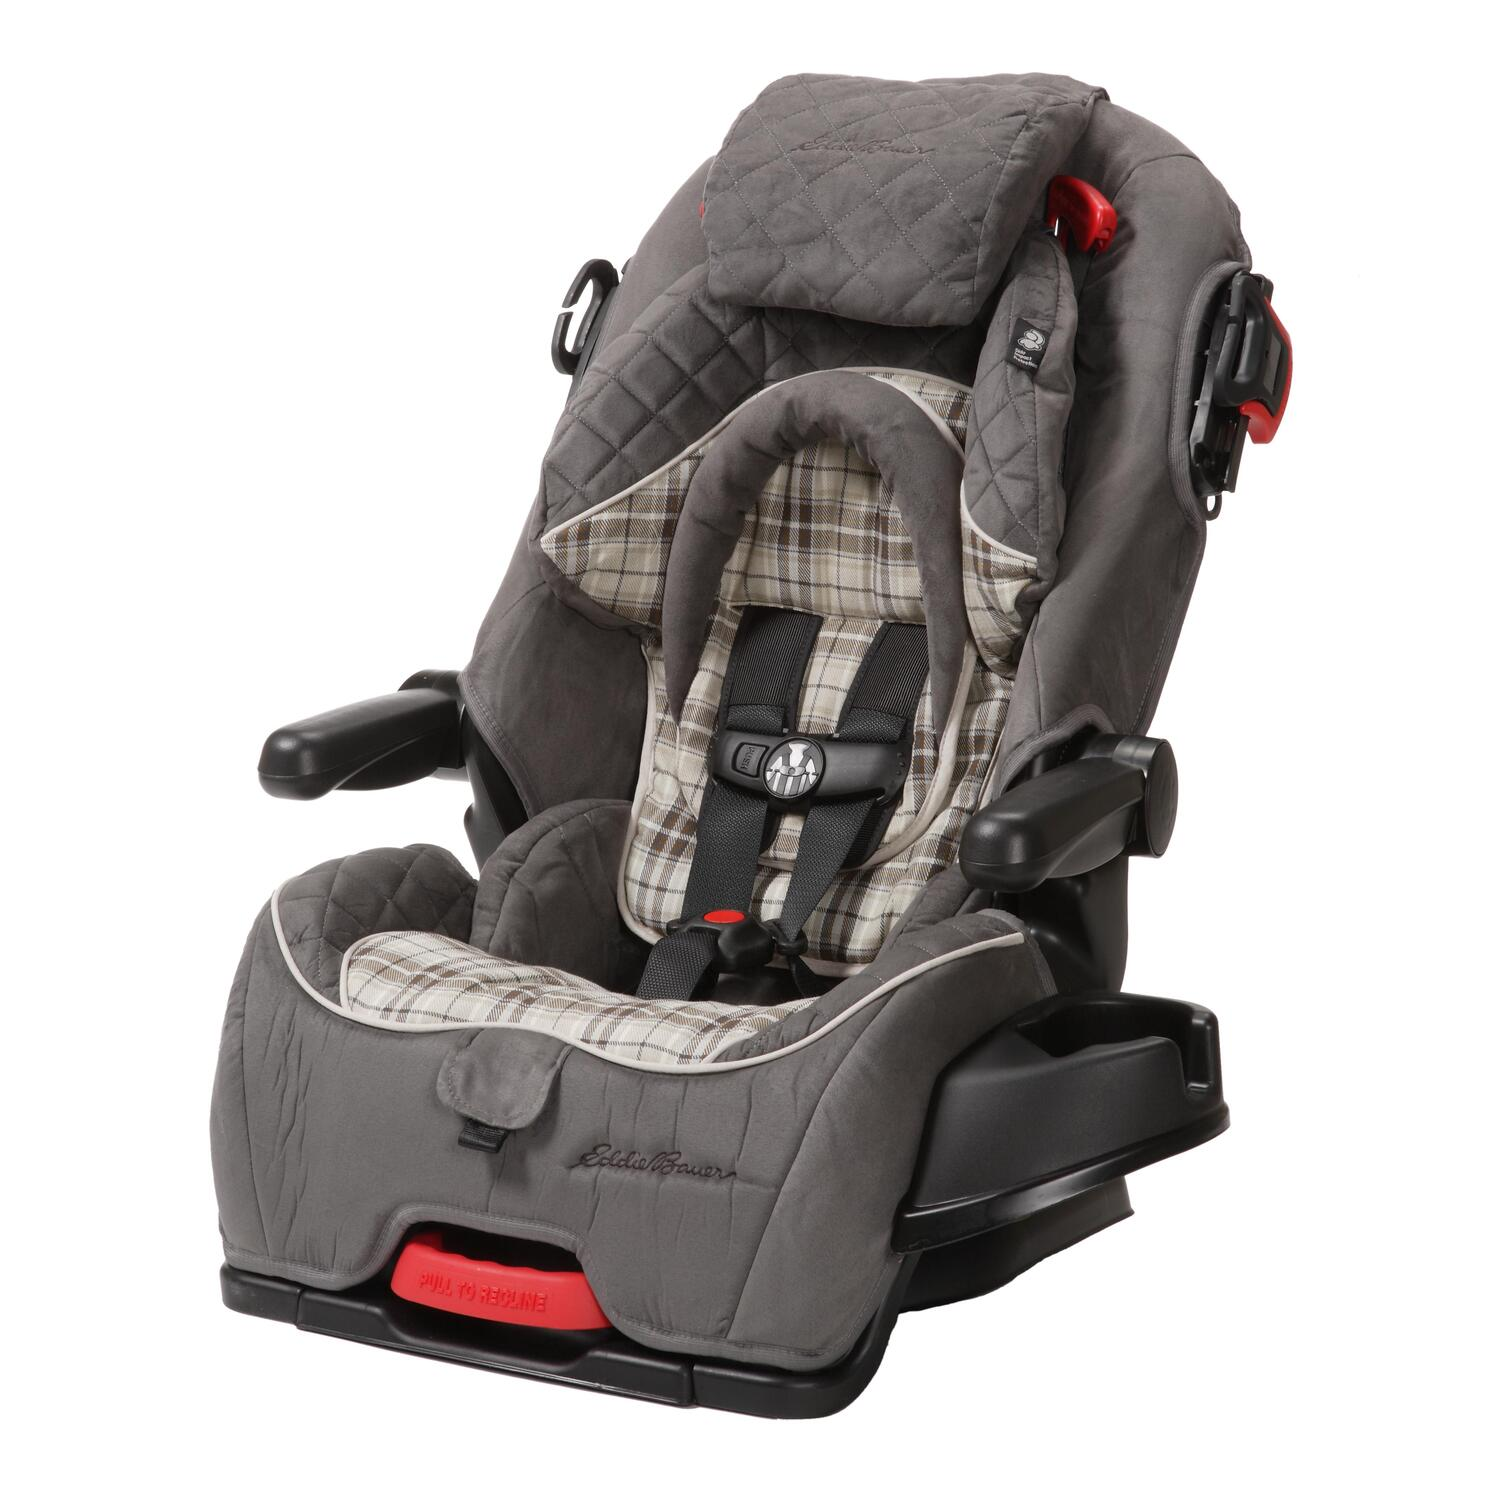 eddie bauer deluxe 3 in 1 convertible car seat stonewood ojcommerce. Black Bedroom Furniture Sets. Home Design Ideas